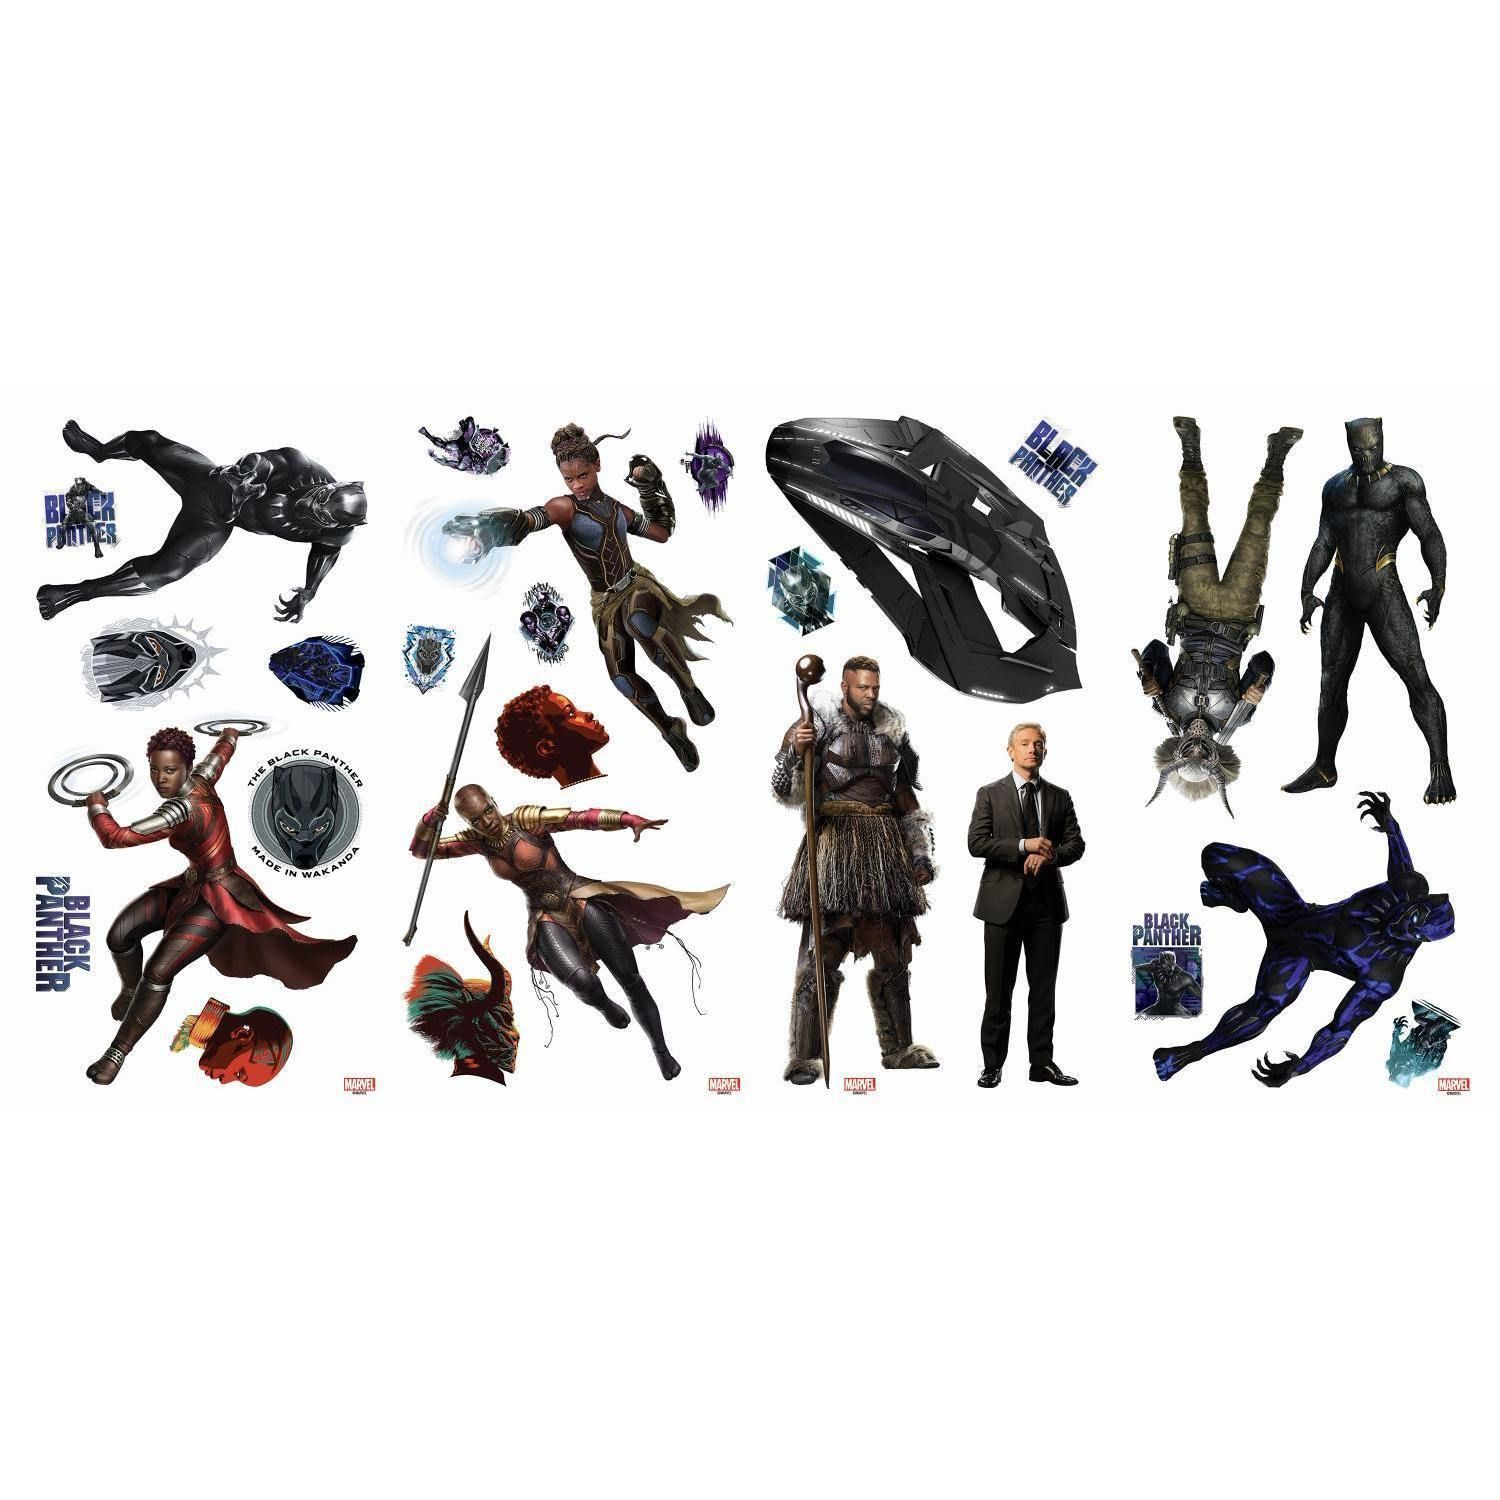 New  BLACK PANTHER Movie WALL DECALS 26 Kids Marvel Superheroes Room Decor Stickers